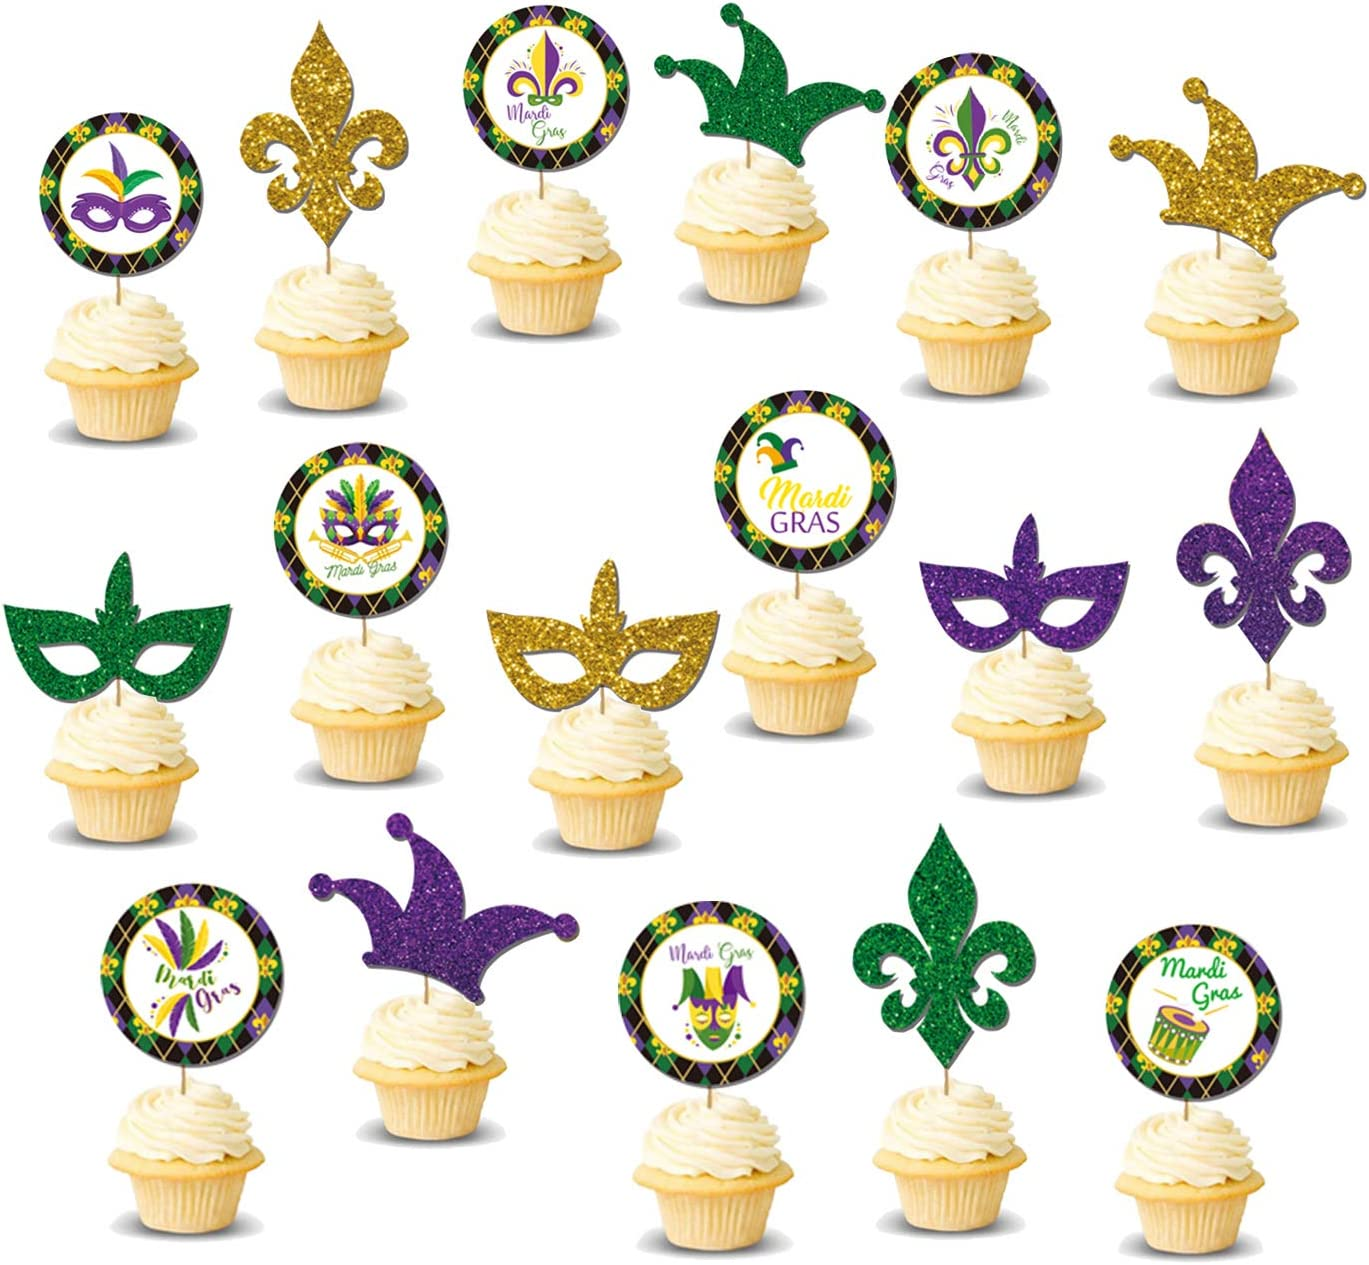 17 Pieces Mardi Gras Cupcake Toppers, Round Cardboard and Glitter Mask Fleur De Lis Cake Picks for Mardi Gras Party Decorations, Masquerade Birthday Party Supplies